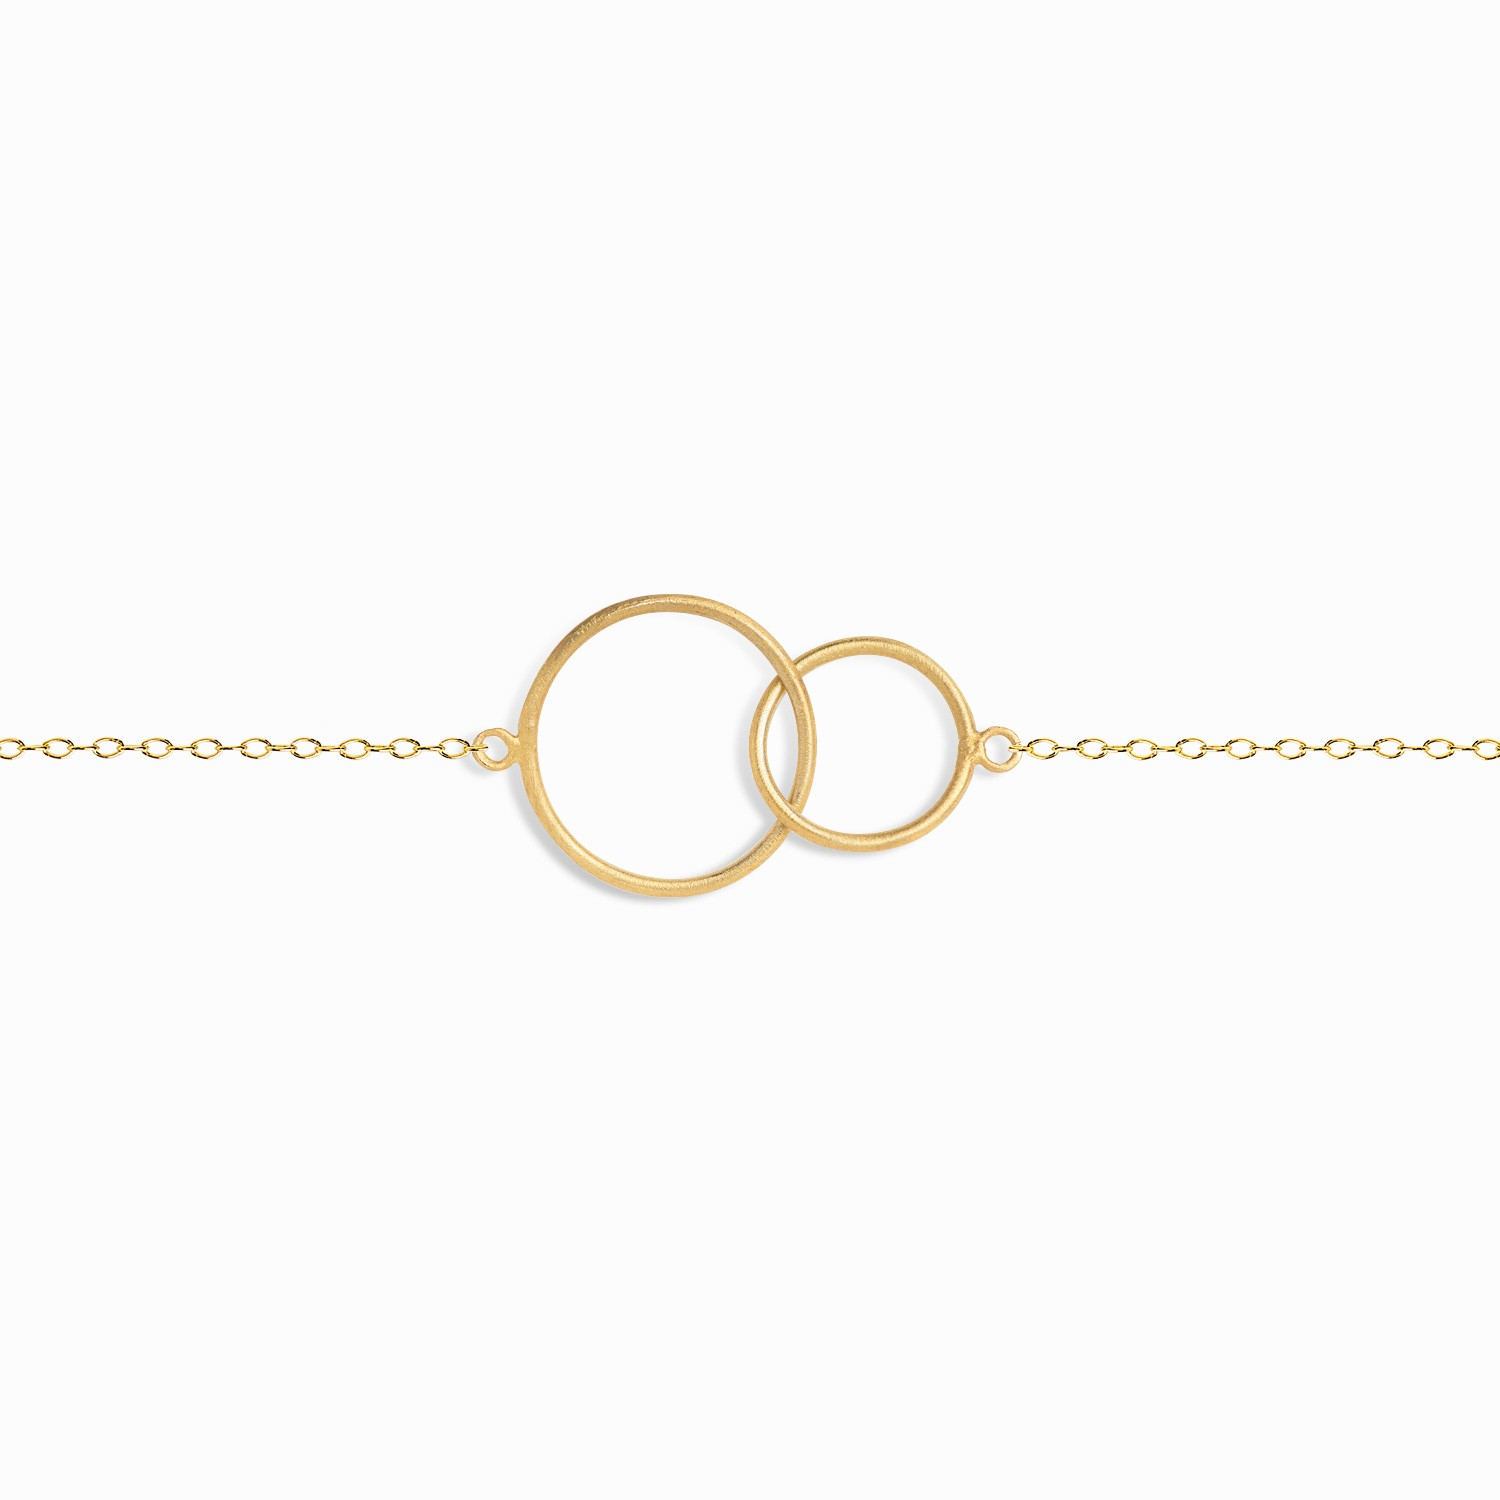 elegant gift charm geometric luxury gifts women product simple diamond golden cuff childrens heart bracelets bracelet gold